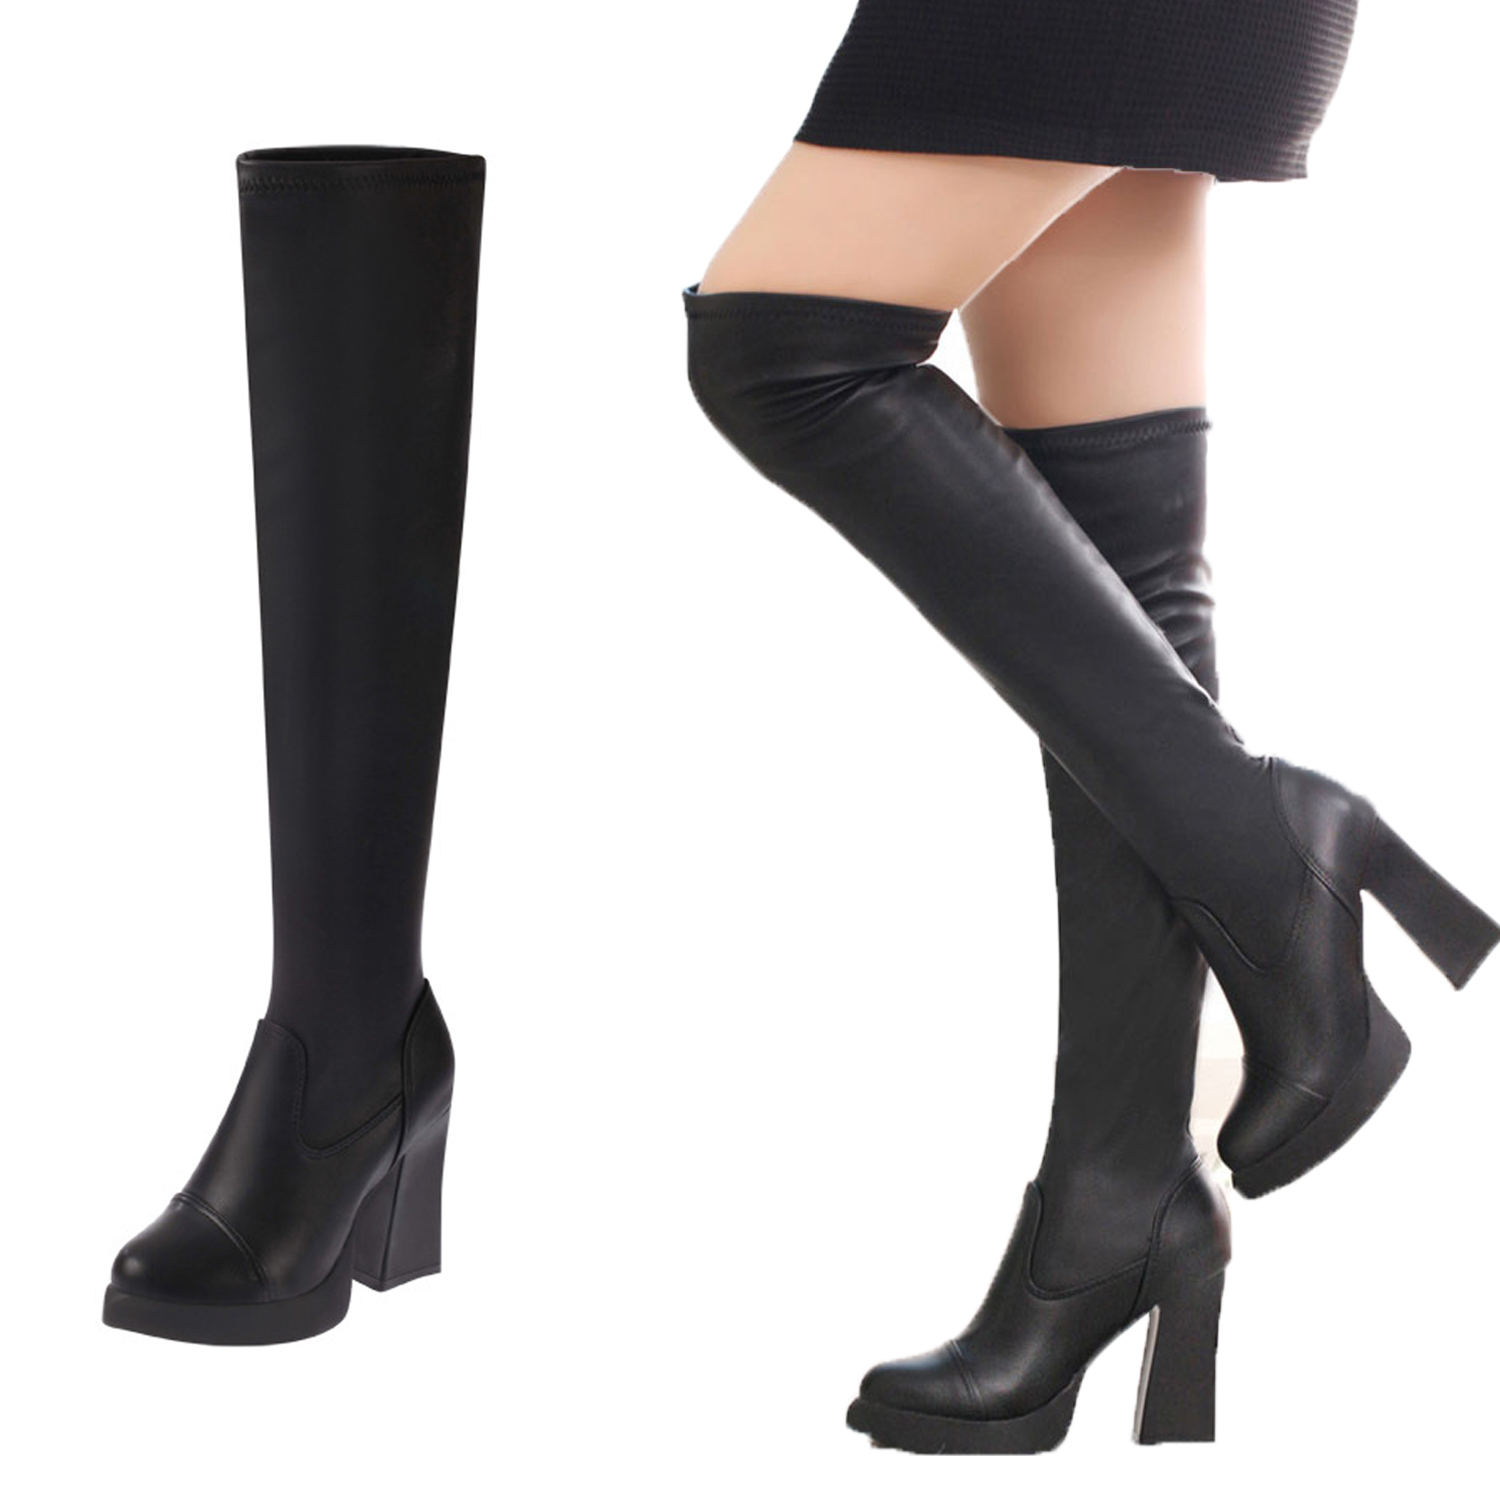 15ccc32b7f2 Women Over Knee Boots Fashion Long Boot Winter Footwear Sexy Snow Warm  Thick Plus velvet High Heel Shoes Black High Quality-in Knee-High Boots  from Shoes